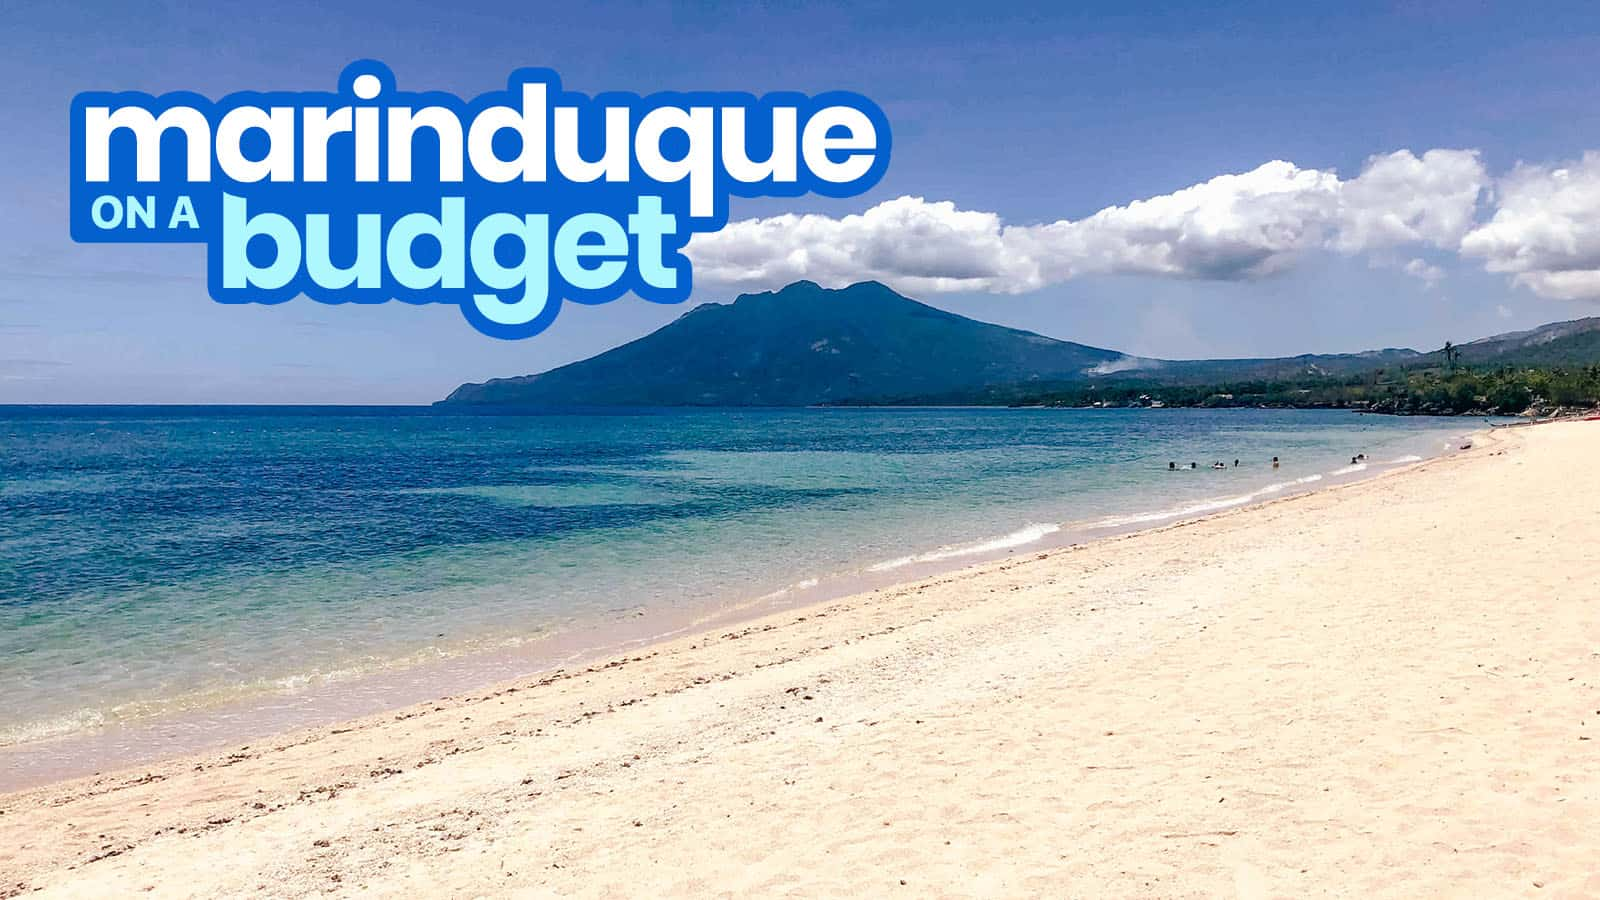 MARINDUQUE TRAVEL GUIDE with Budget Itinerary